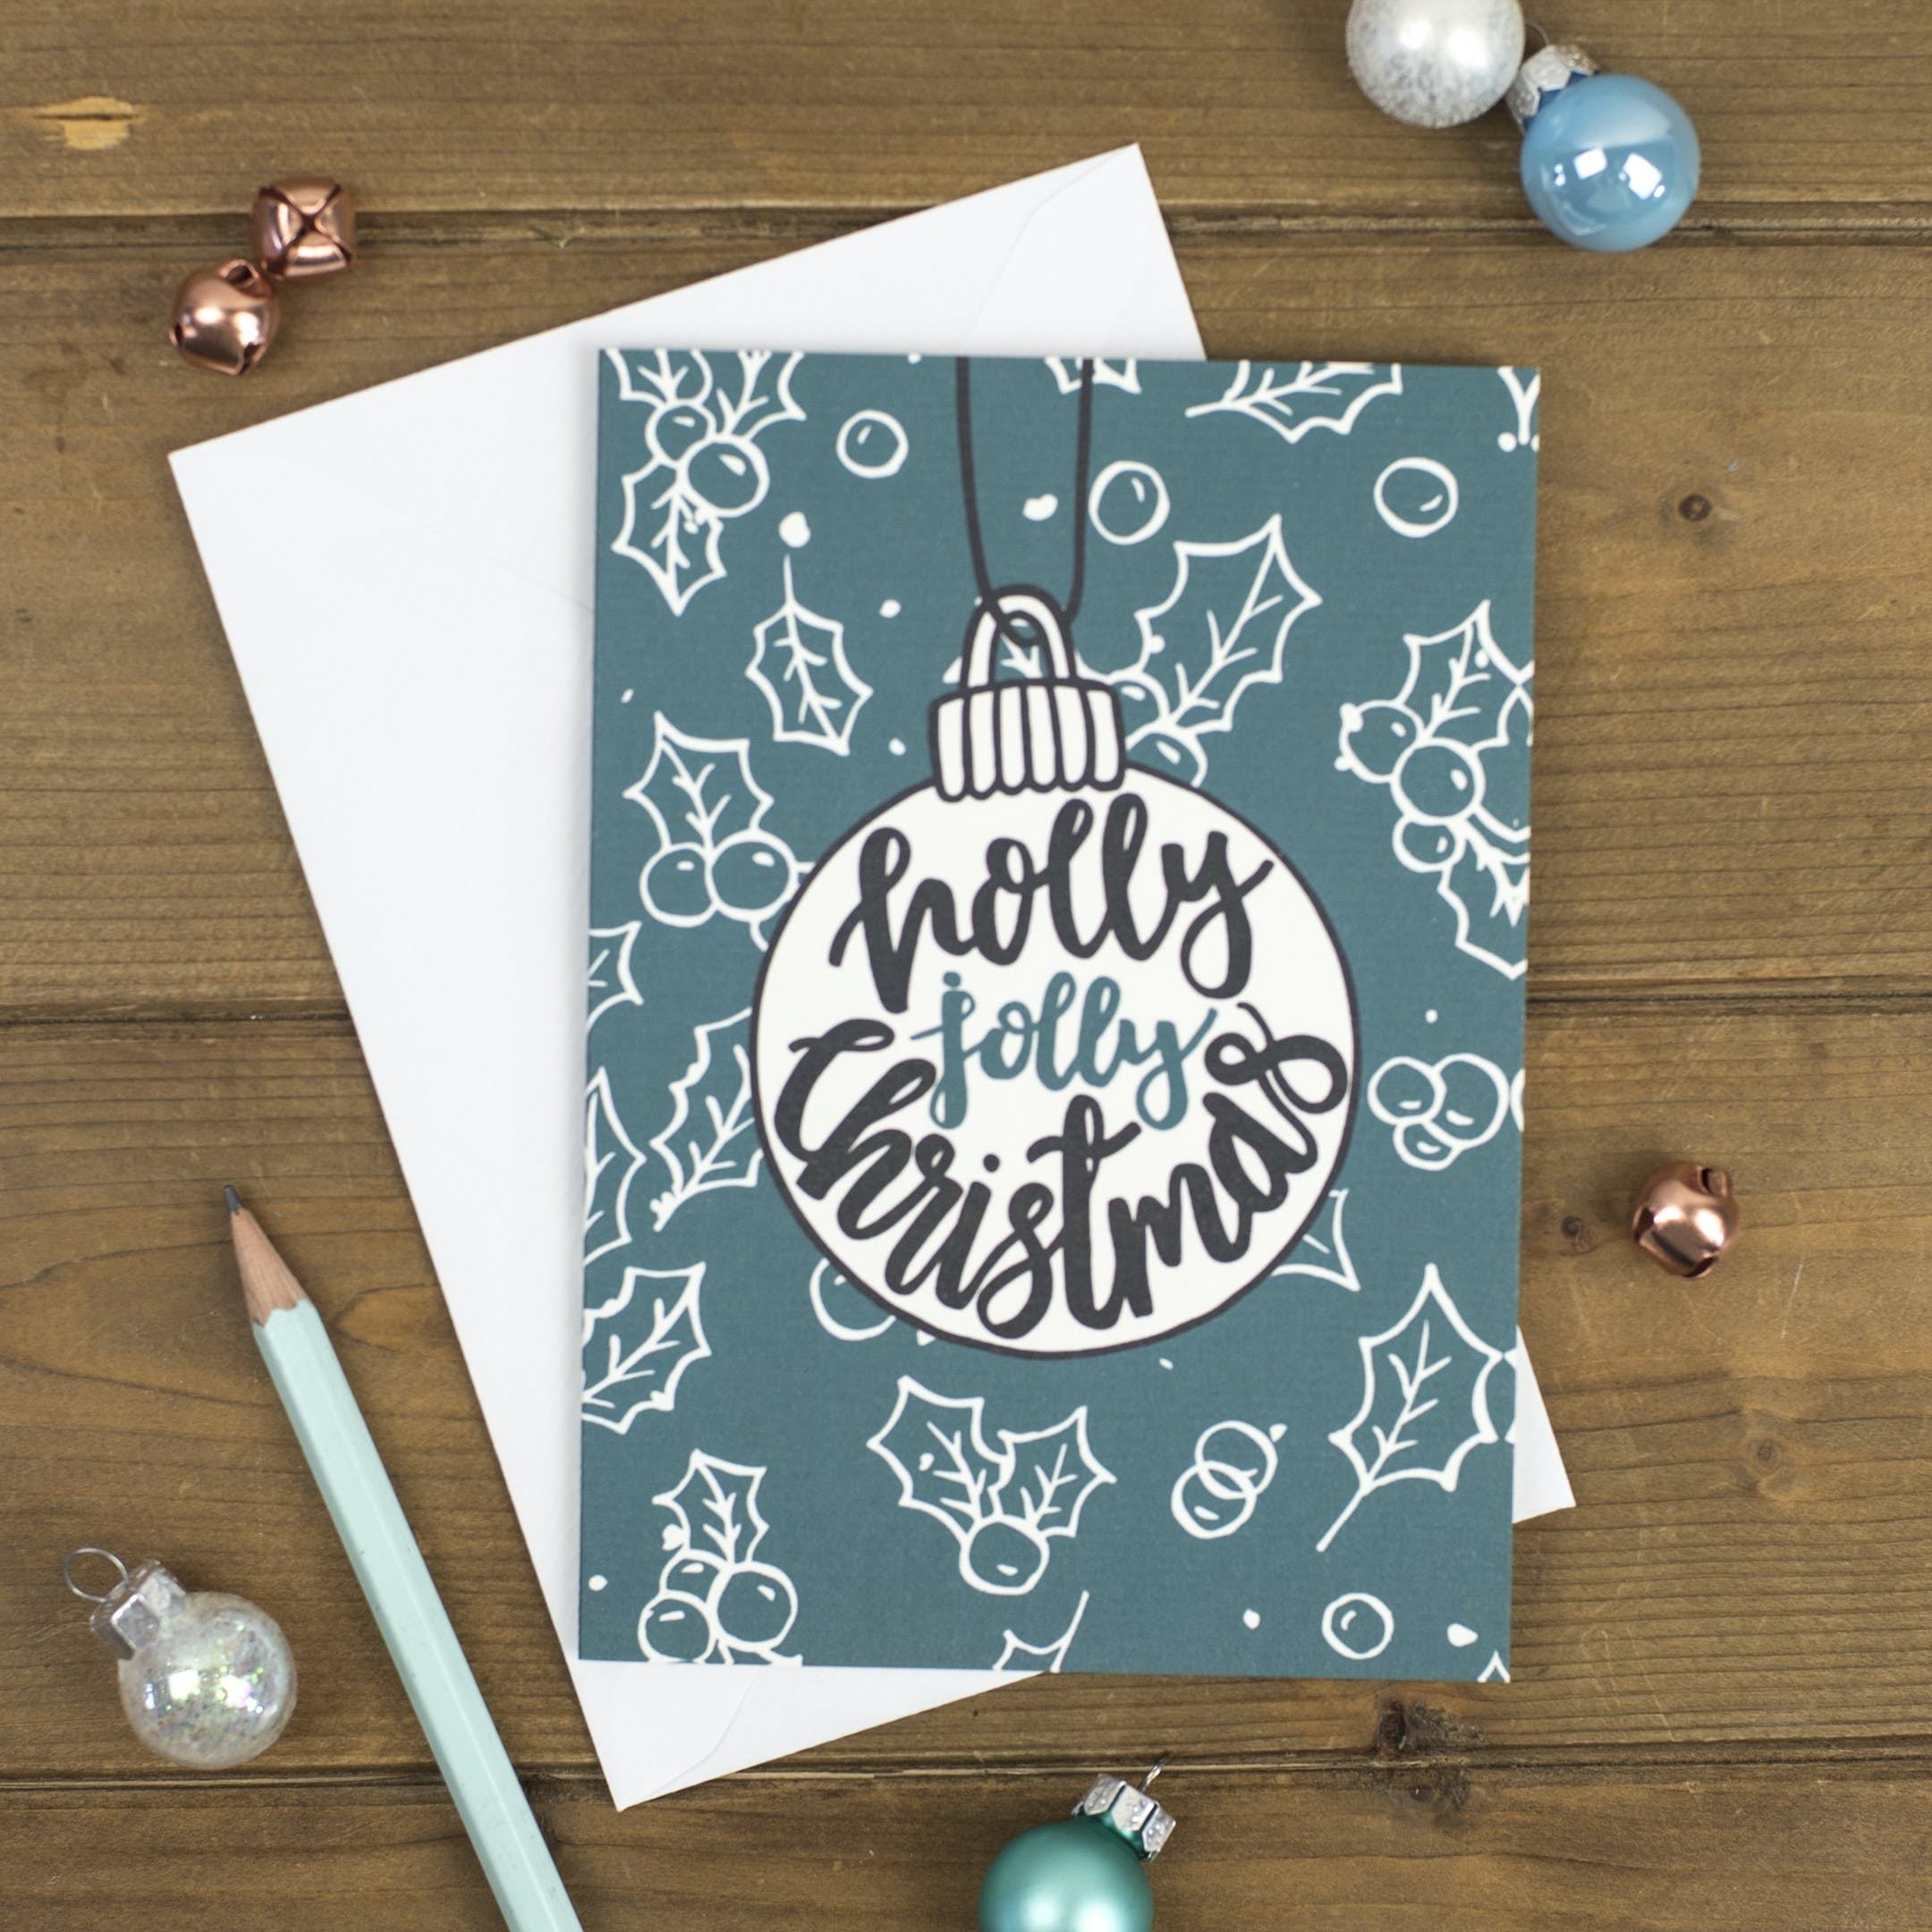 Holly Jolly Christmas Bauble Card - Izzy and Pop